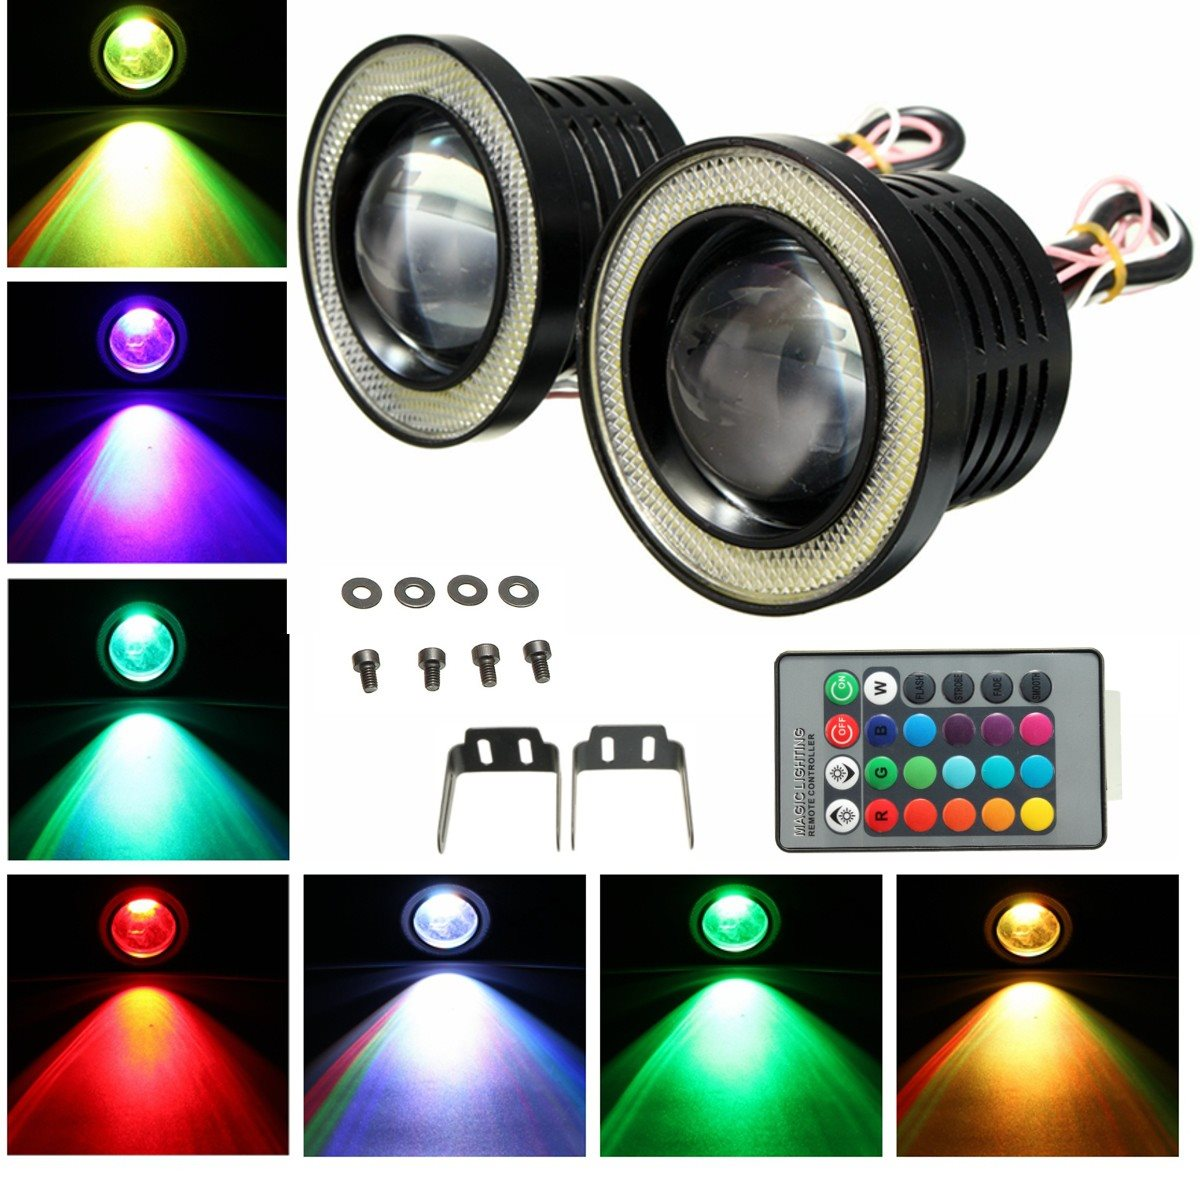 2X Wireless Control  Waterproof LED Fog Light With Lens Halo Angel Eyes Rings COB 30W White 12V SUV ATV Off Road Fog Lamp<br><br>Aliexpress